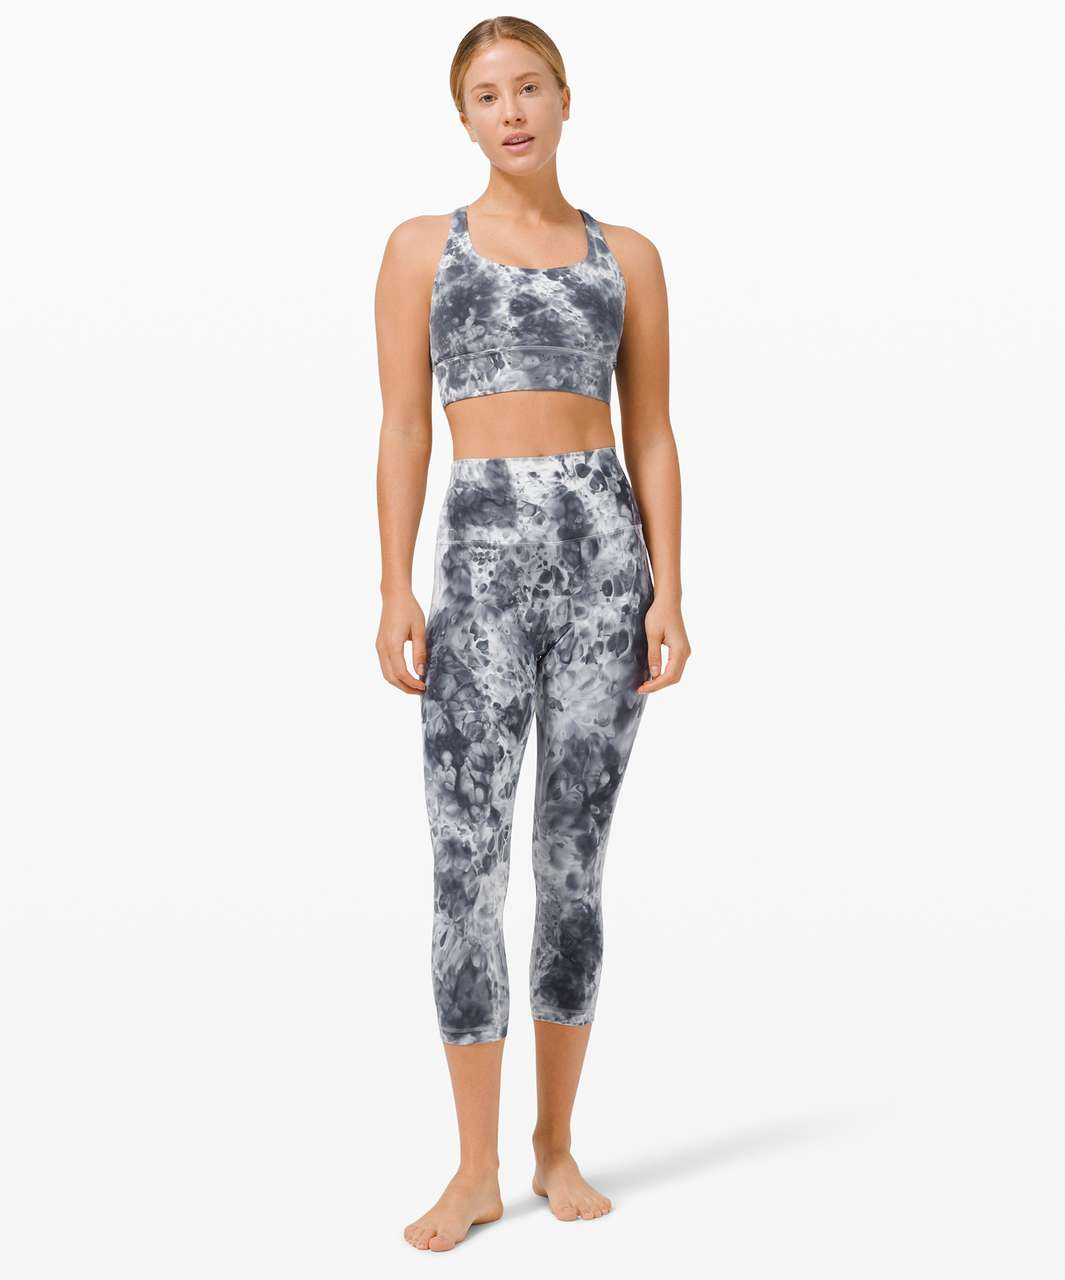 "Lululemon Wunder Under Marble Dye High Rise Crop 21"" - Marble Dye Classic Navy"